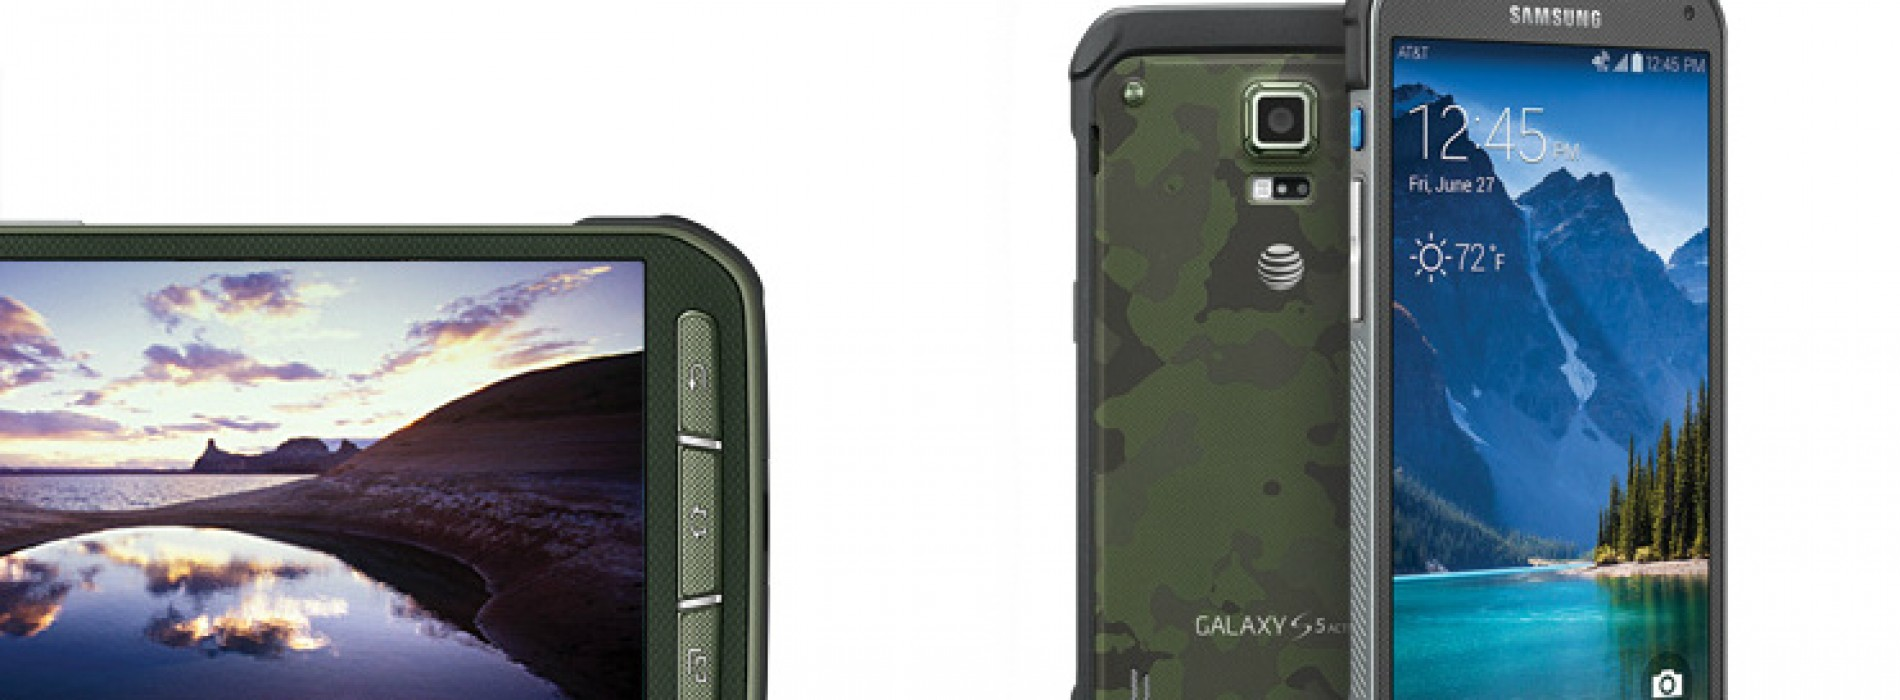 AT&T now selling rugged Samsung Galaxy S5 Active